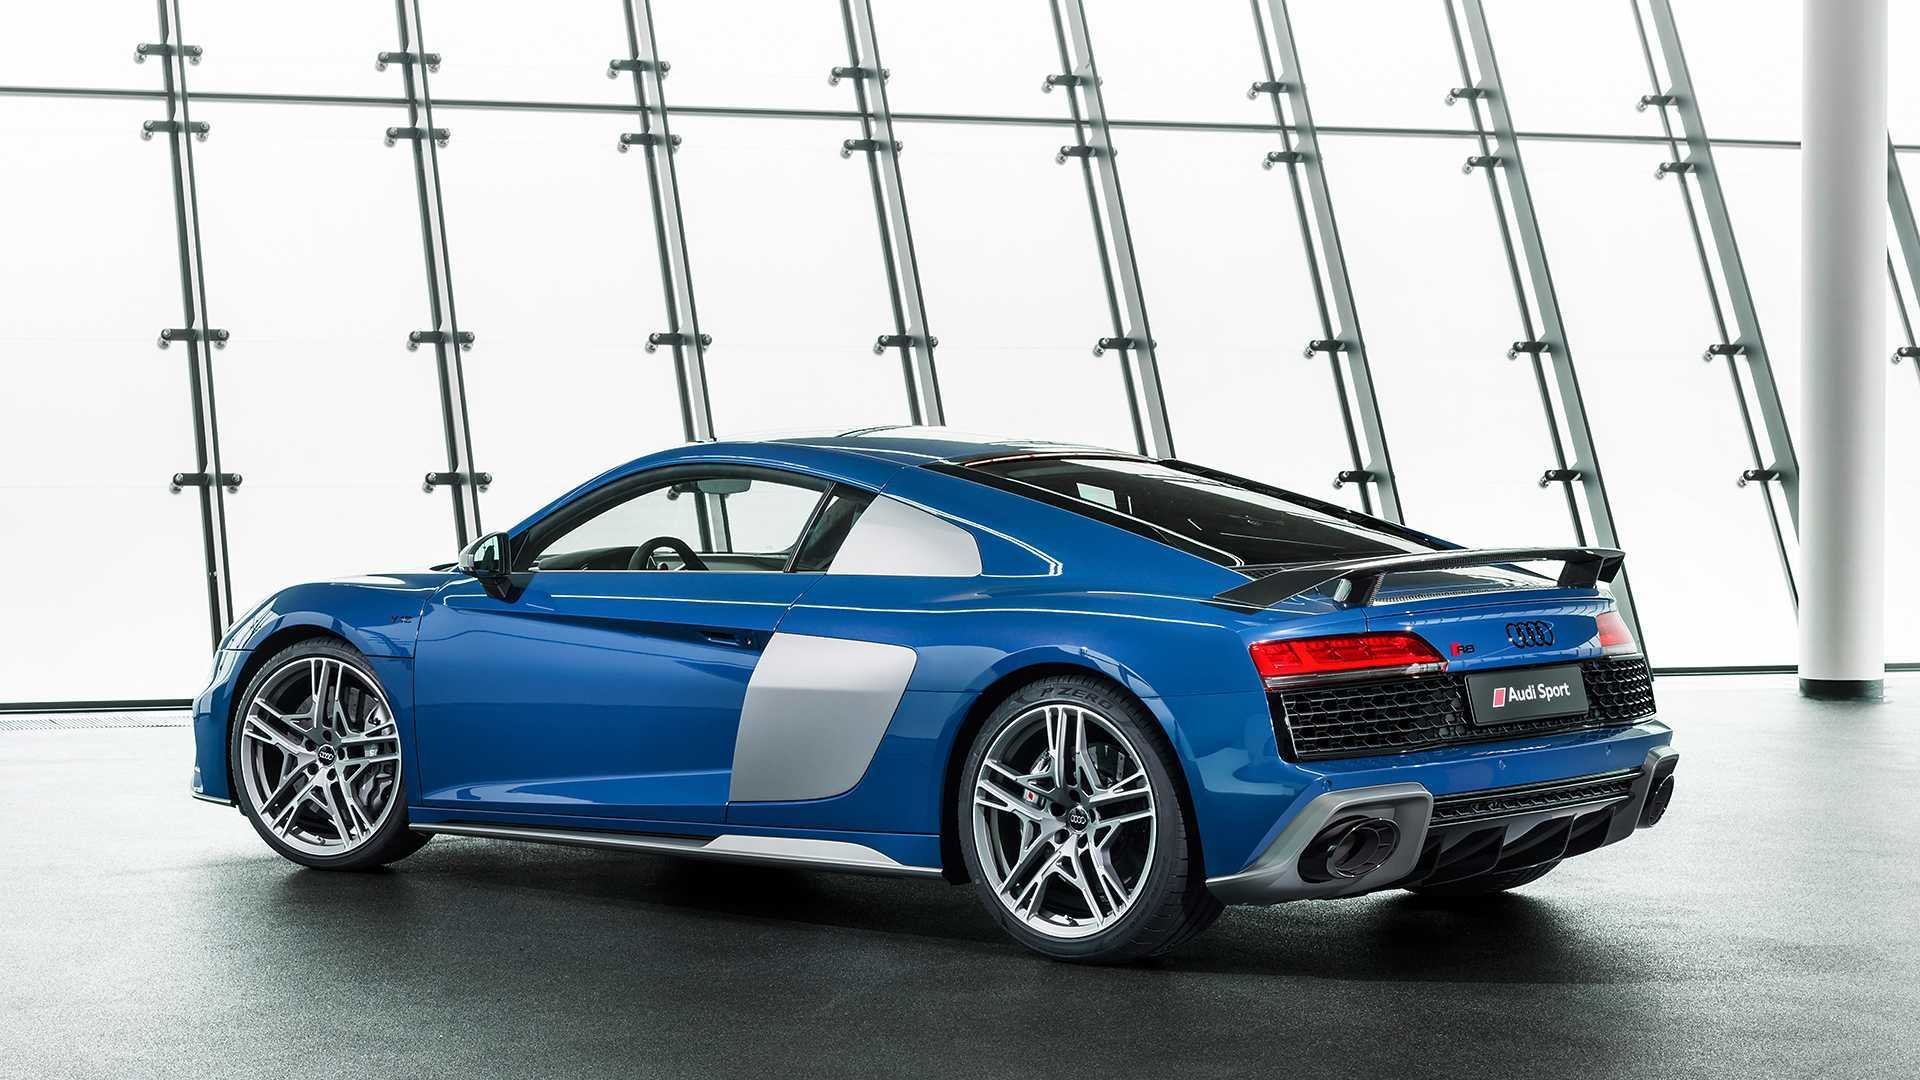 New 2019 Audi R8 Sportback Rendered As The Practical Supercar On This Month